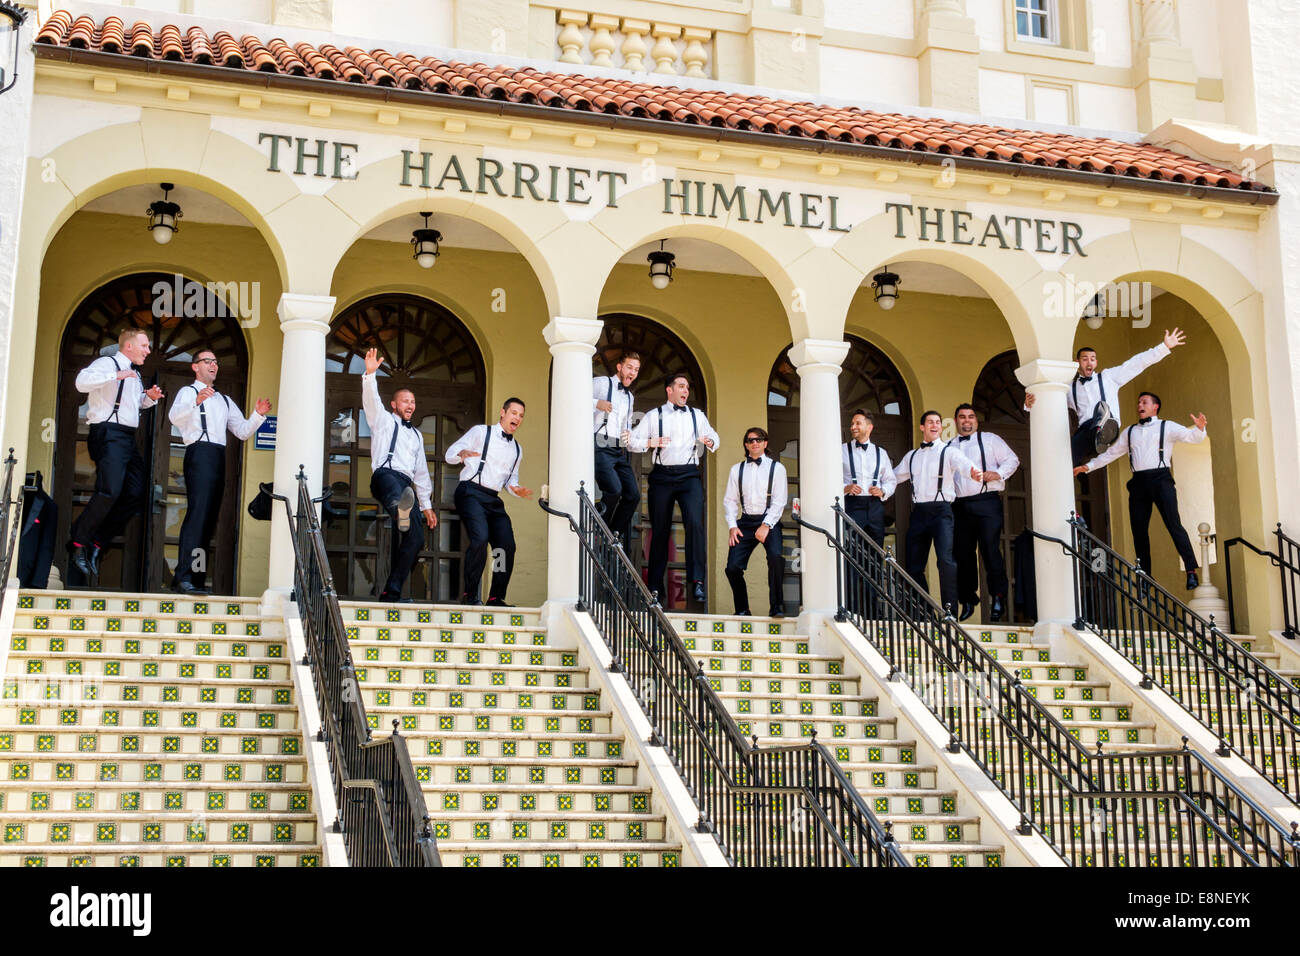 West Palm Beach Florida Cityplace City Place Shopping Mall Harriet Himmel Theater Theatre Front Entrance Groomsmen Wedding Photos Posing